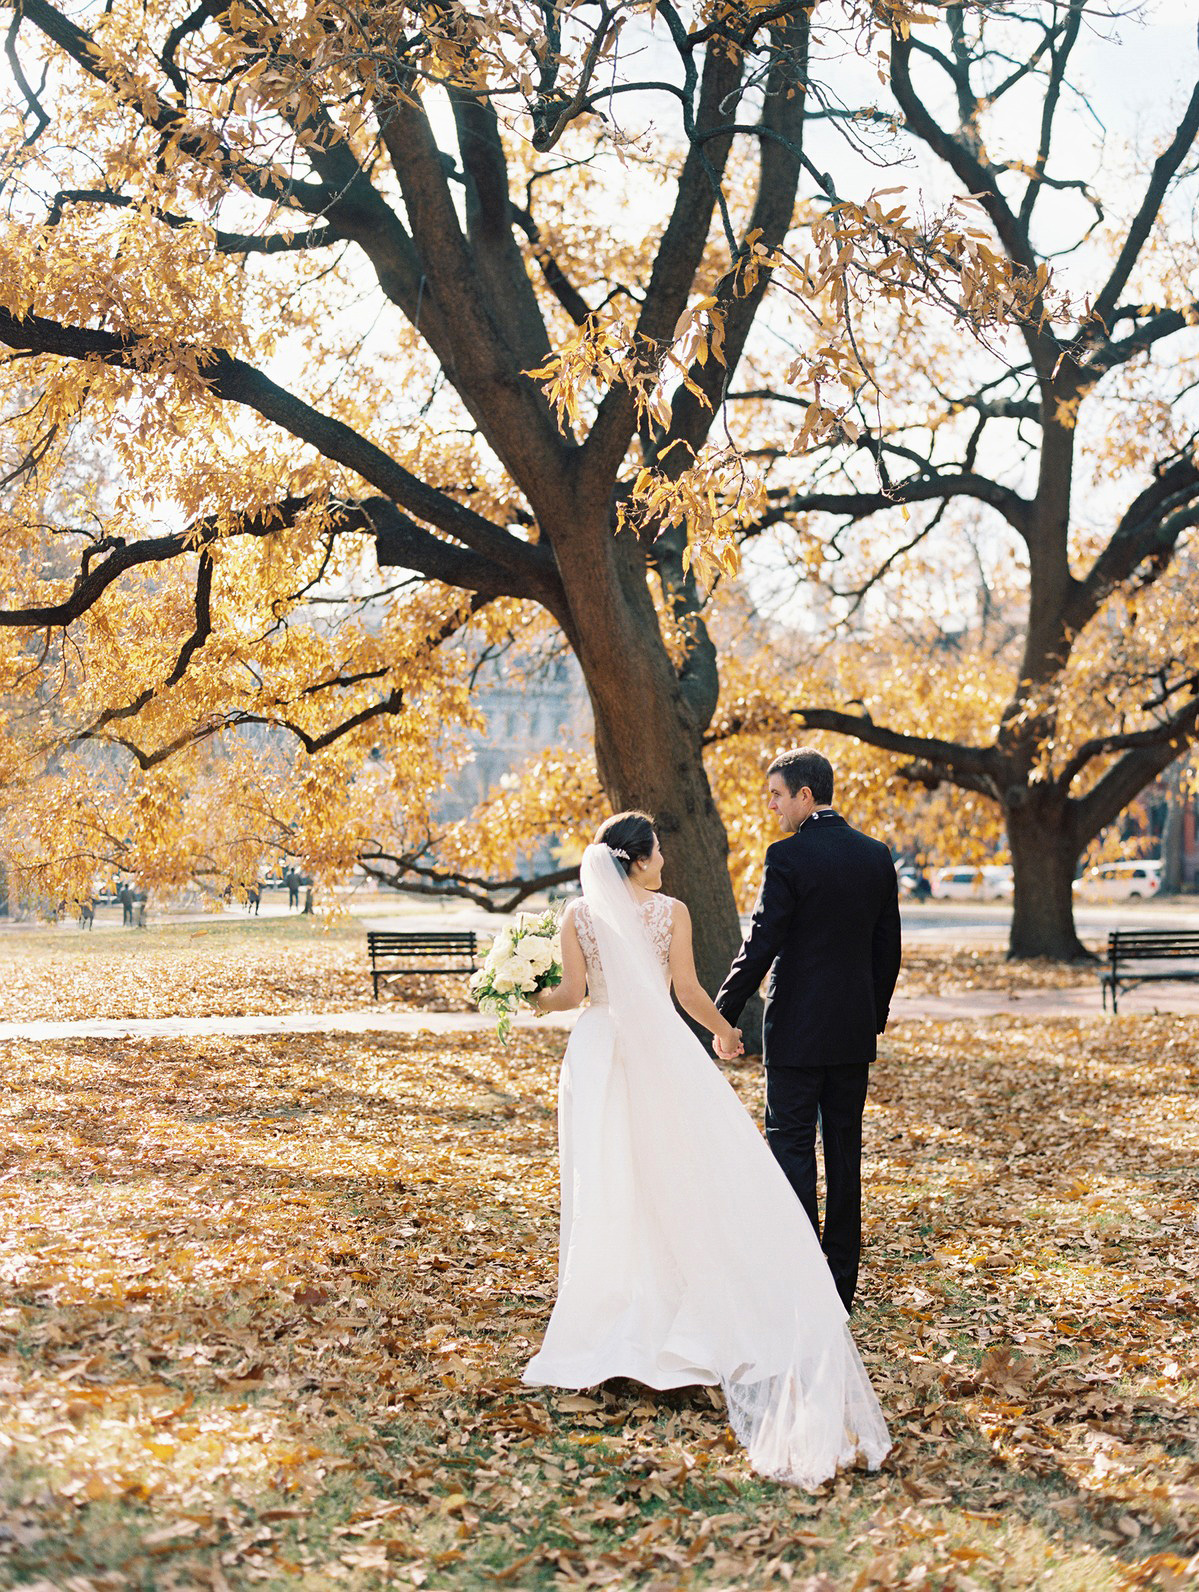 celina rob wedding virginia couple walking leaves